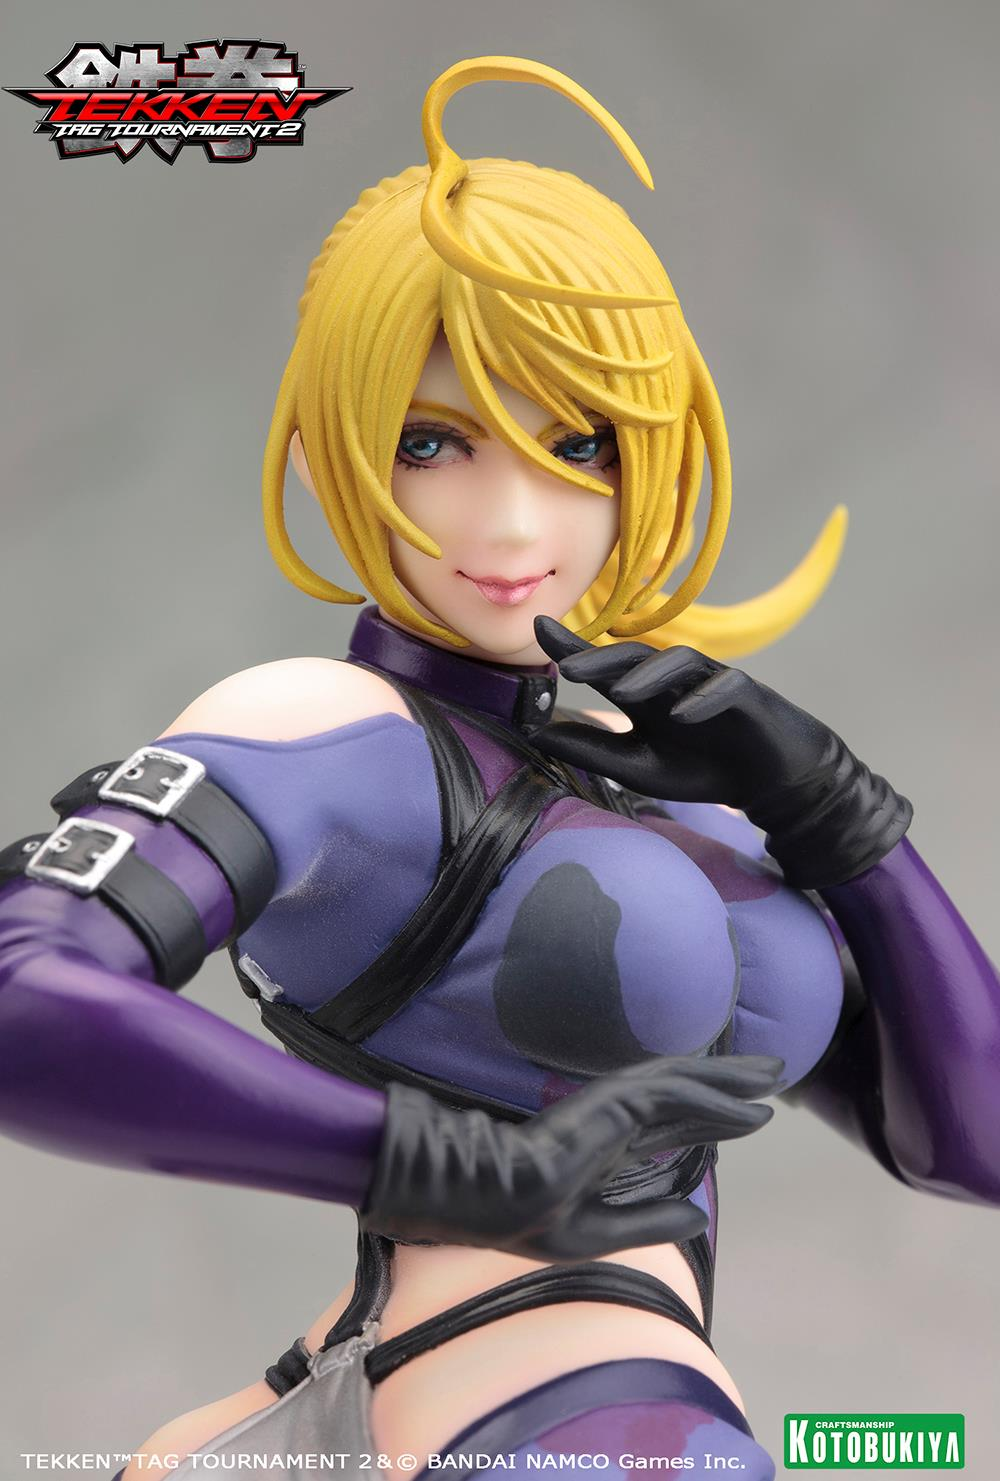 nina-williams-tekken-tournament-2-bishoujo-statue-5